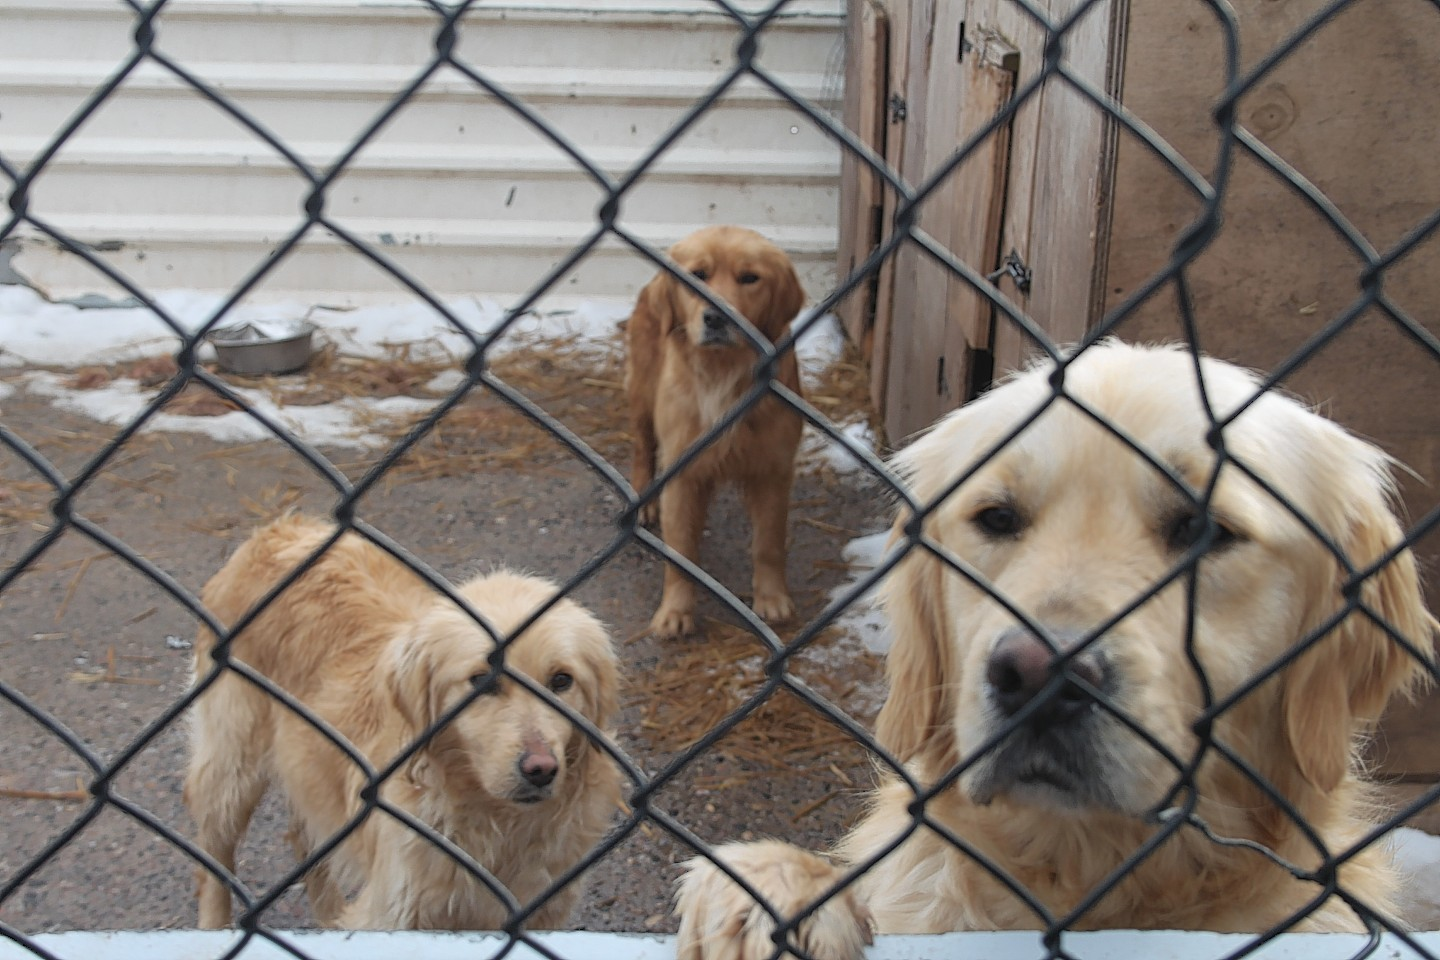 Three of the dogs kept in the cruel conditions